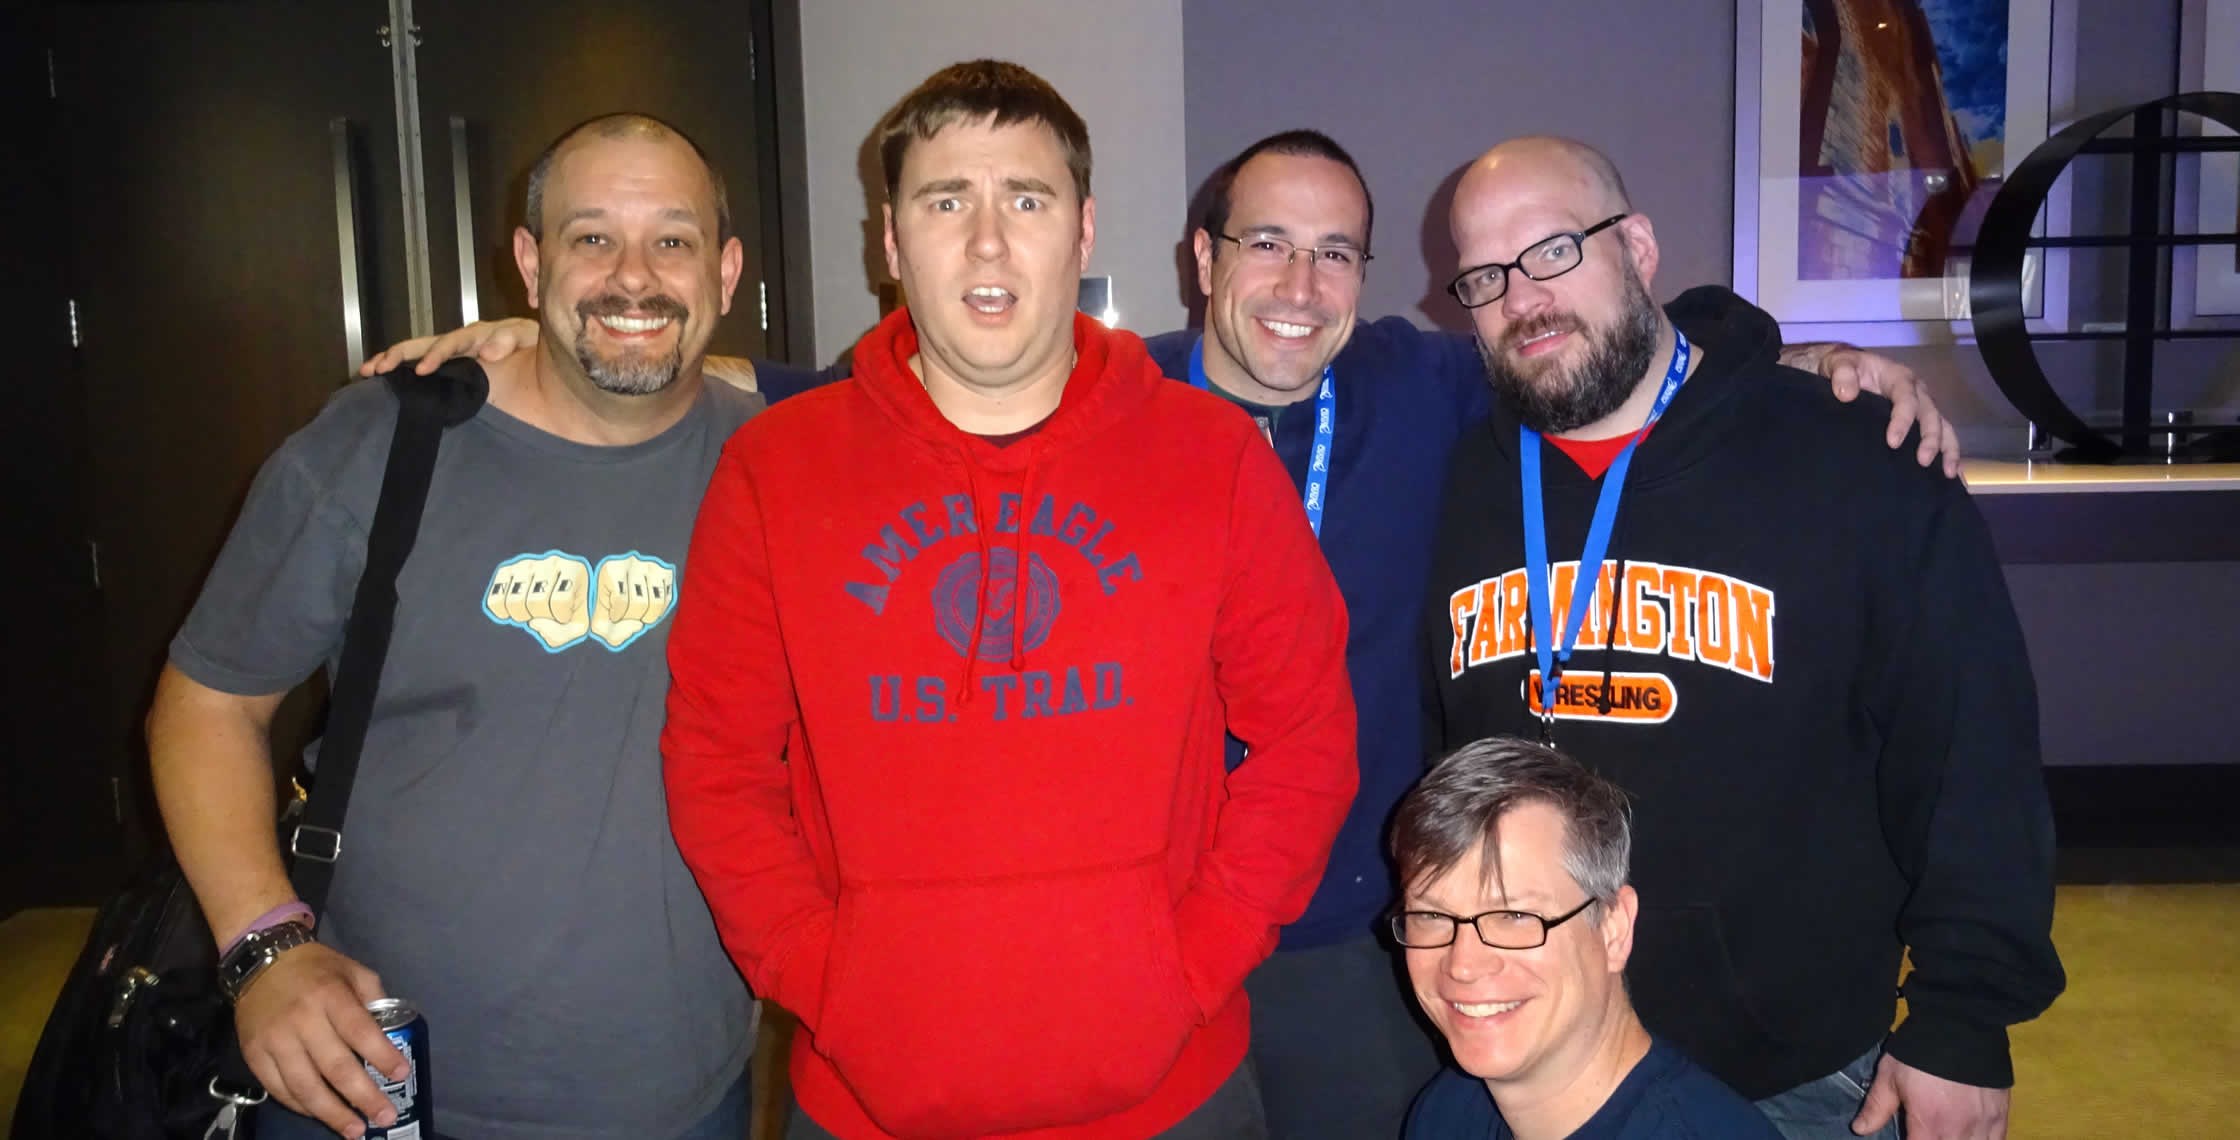 Ben Nadel at cf.Objective() 2014 (Bloomington, MN) with: Dave Ferguson, Simon Free, Tim Cunningham, and Jason Dean